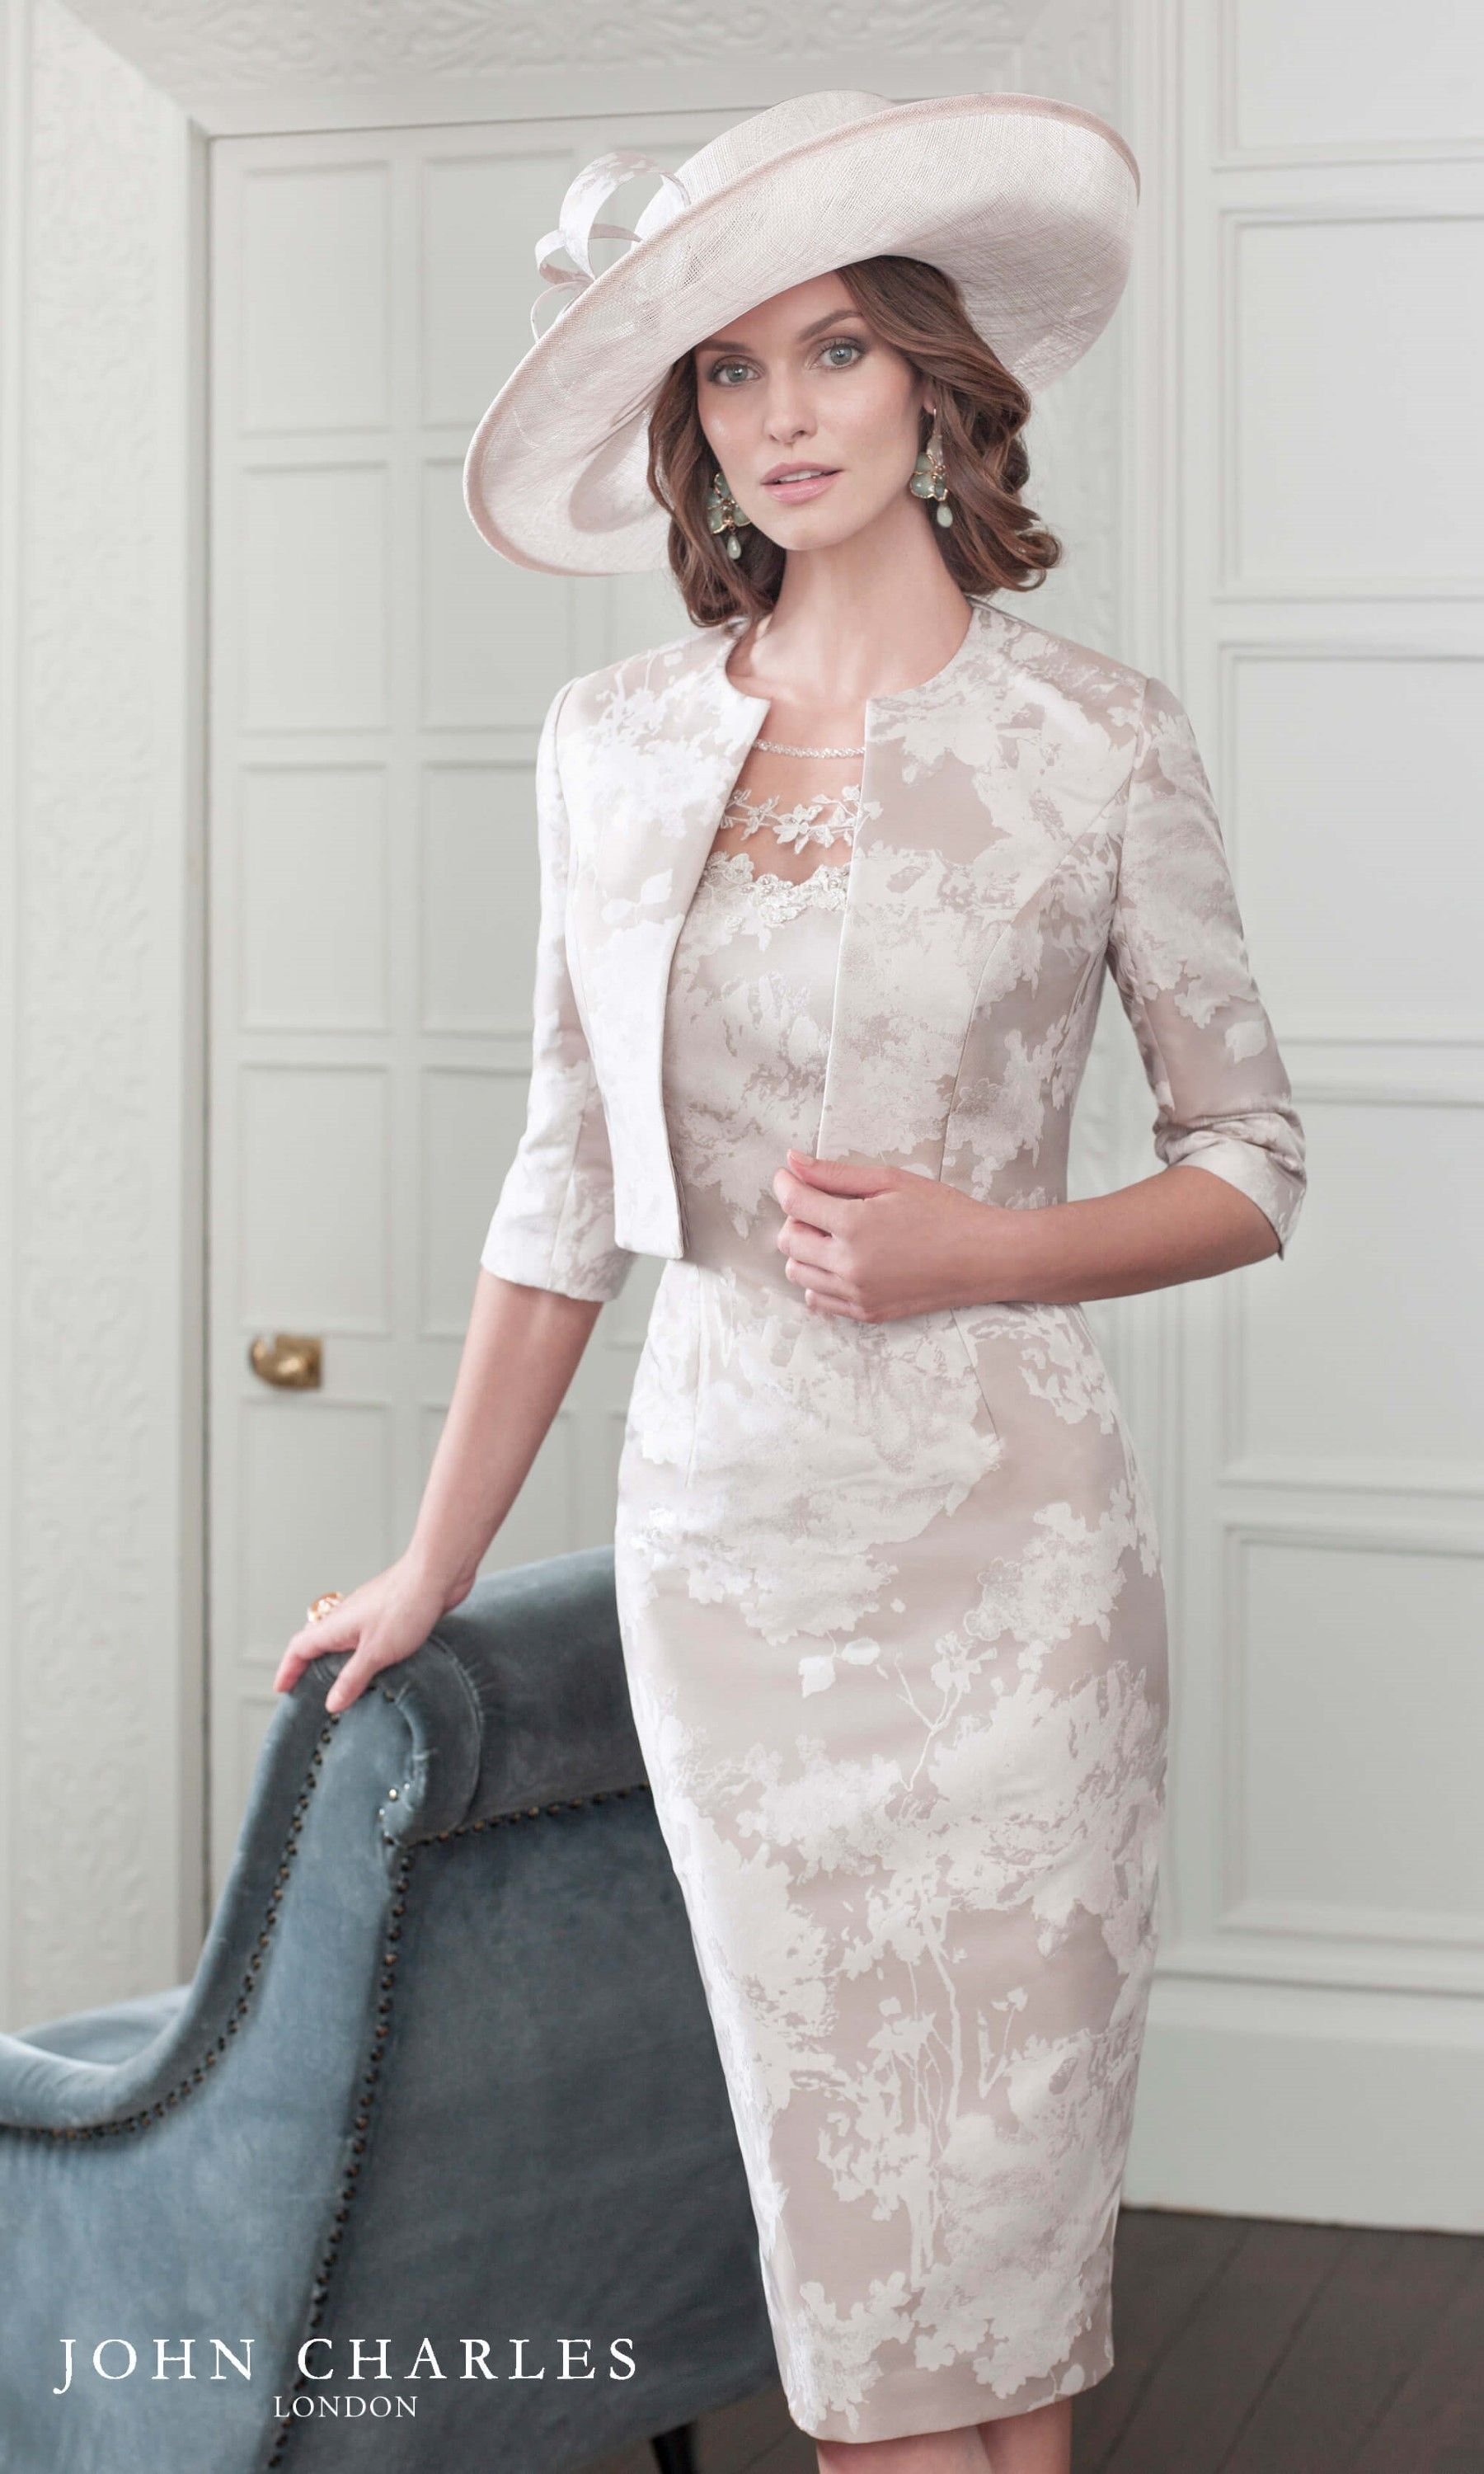 John Charles Mother of the Bride Outfits 2019